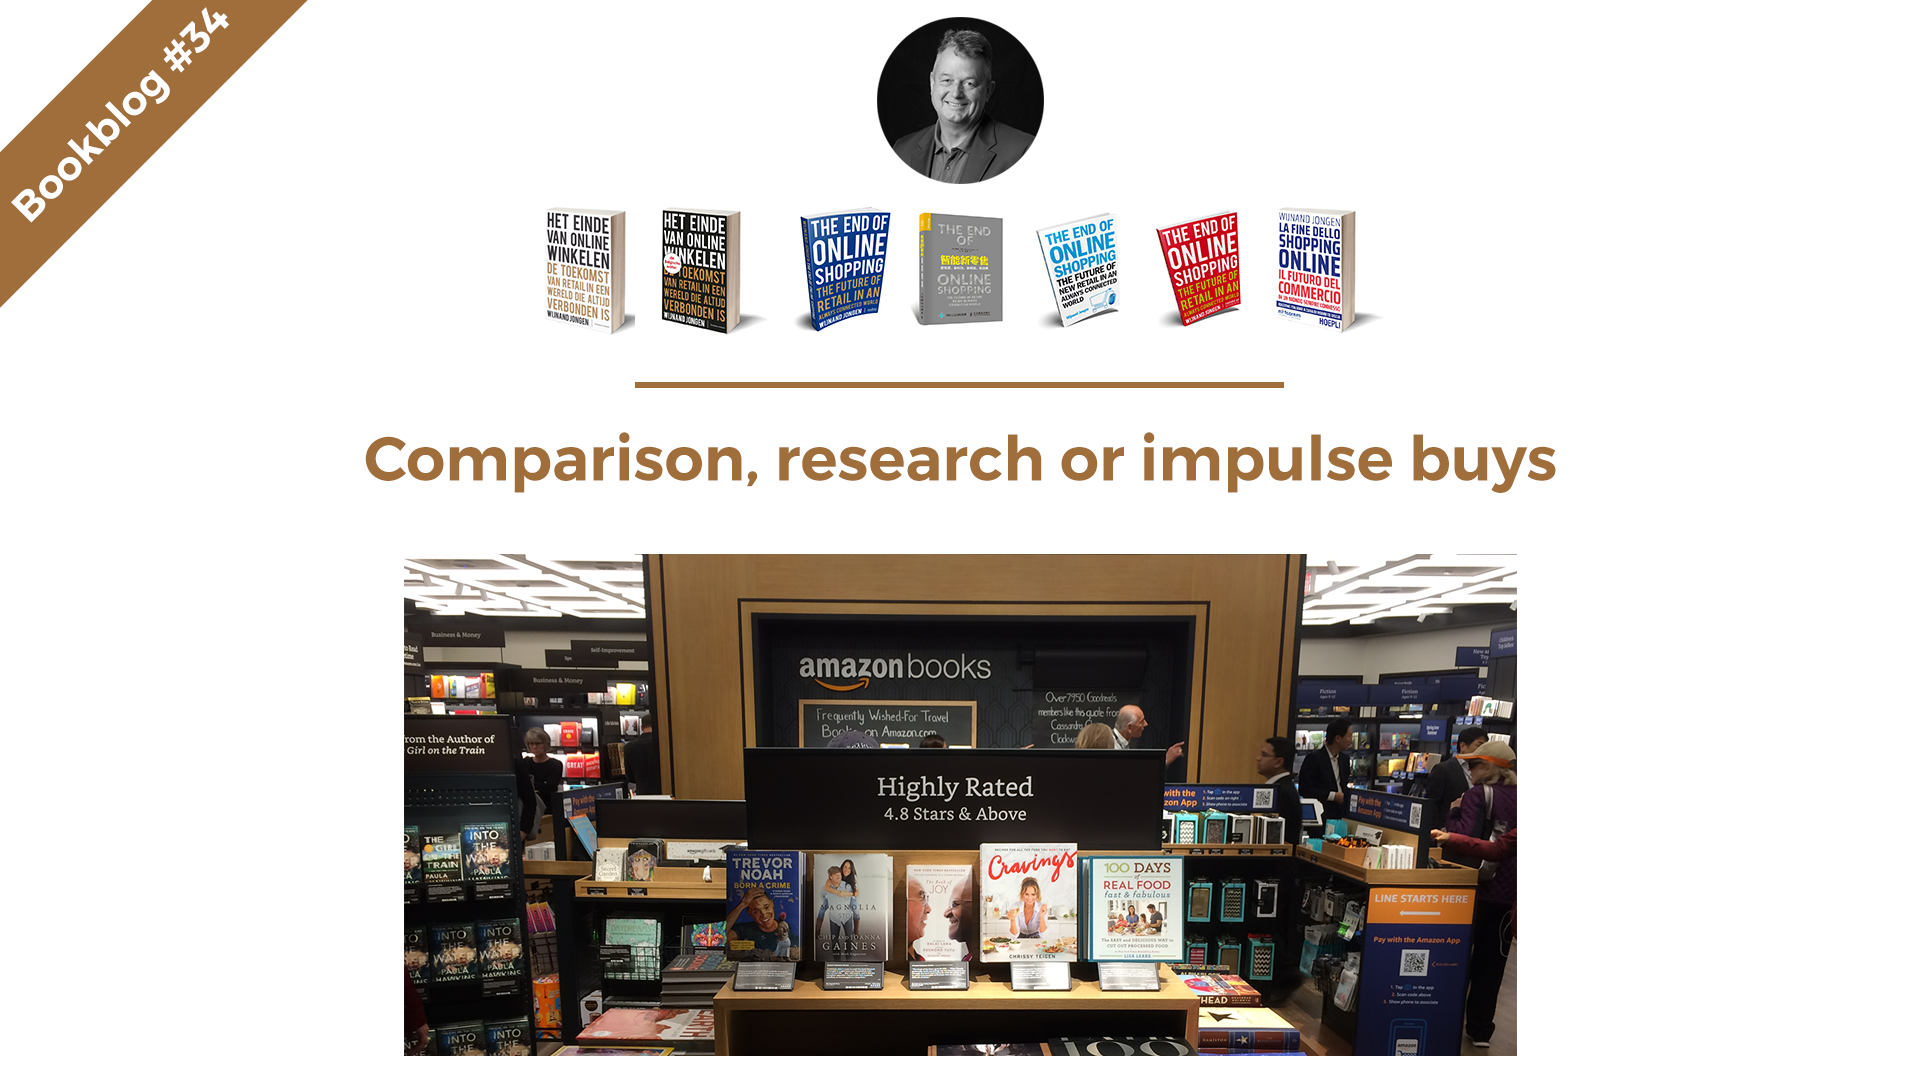 Comparison, research or impulse buys